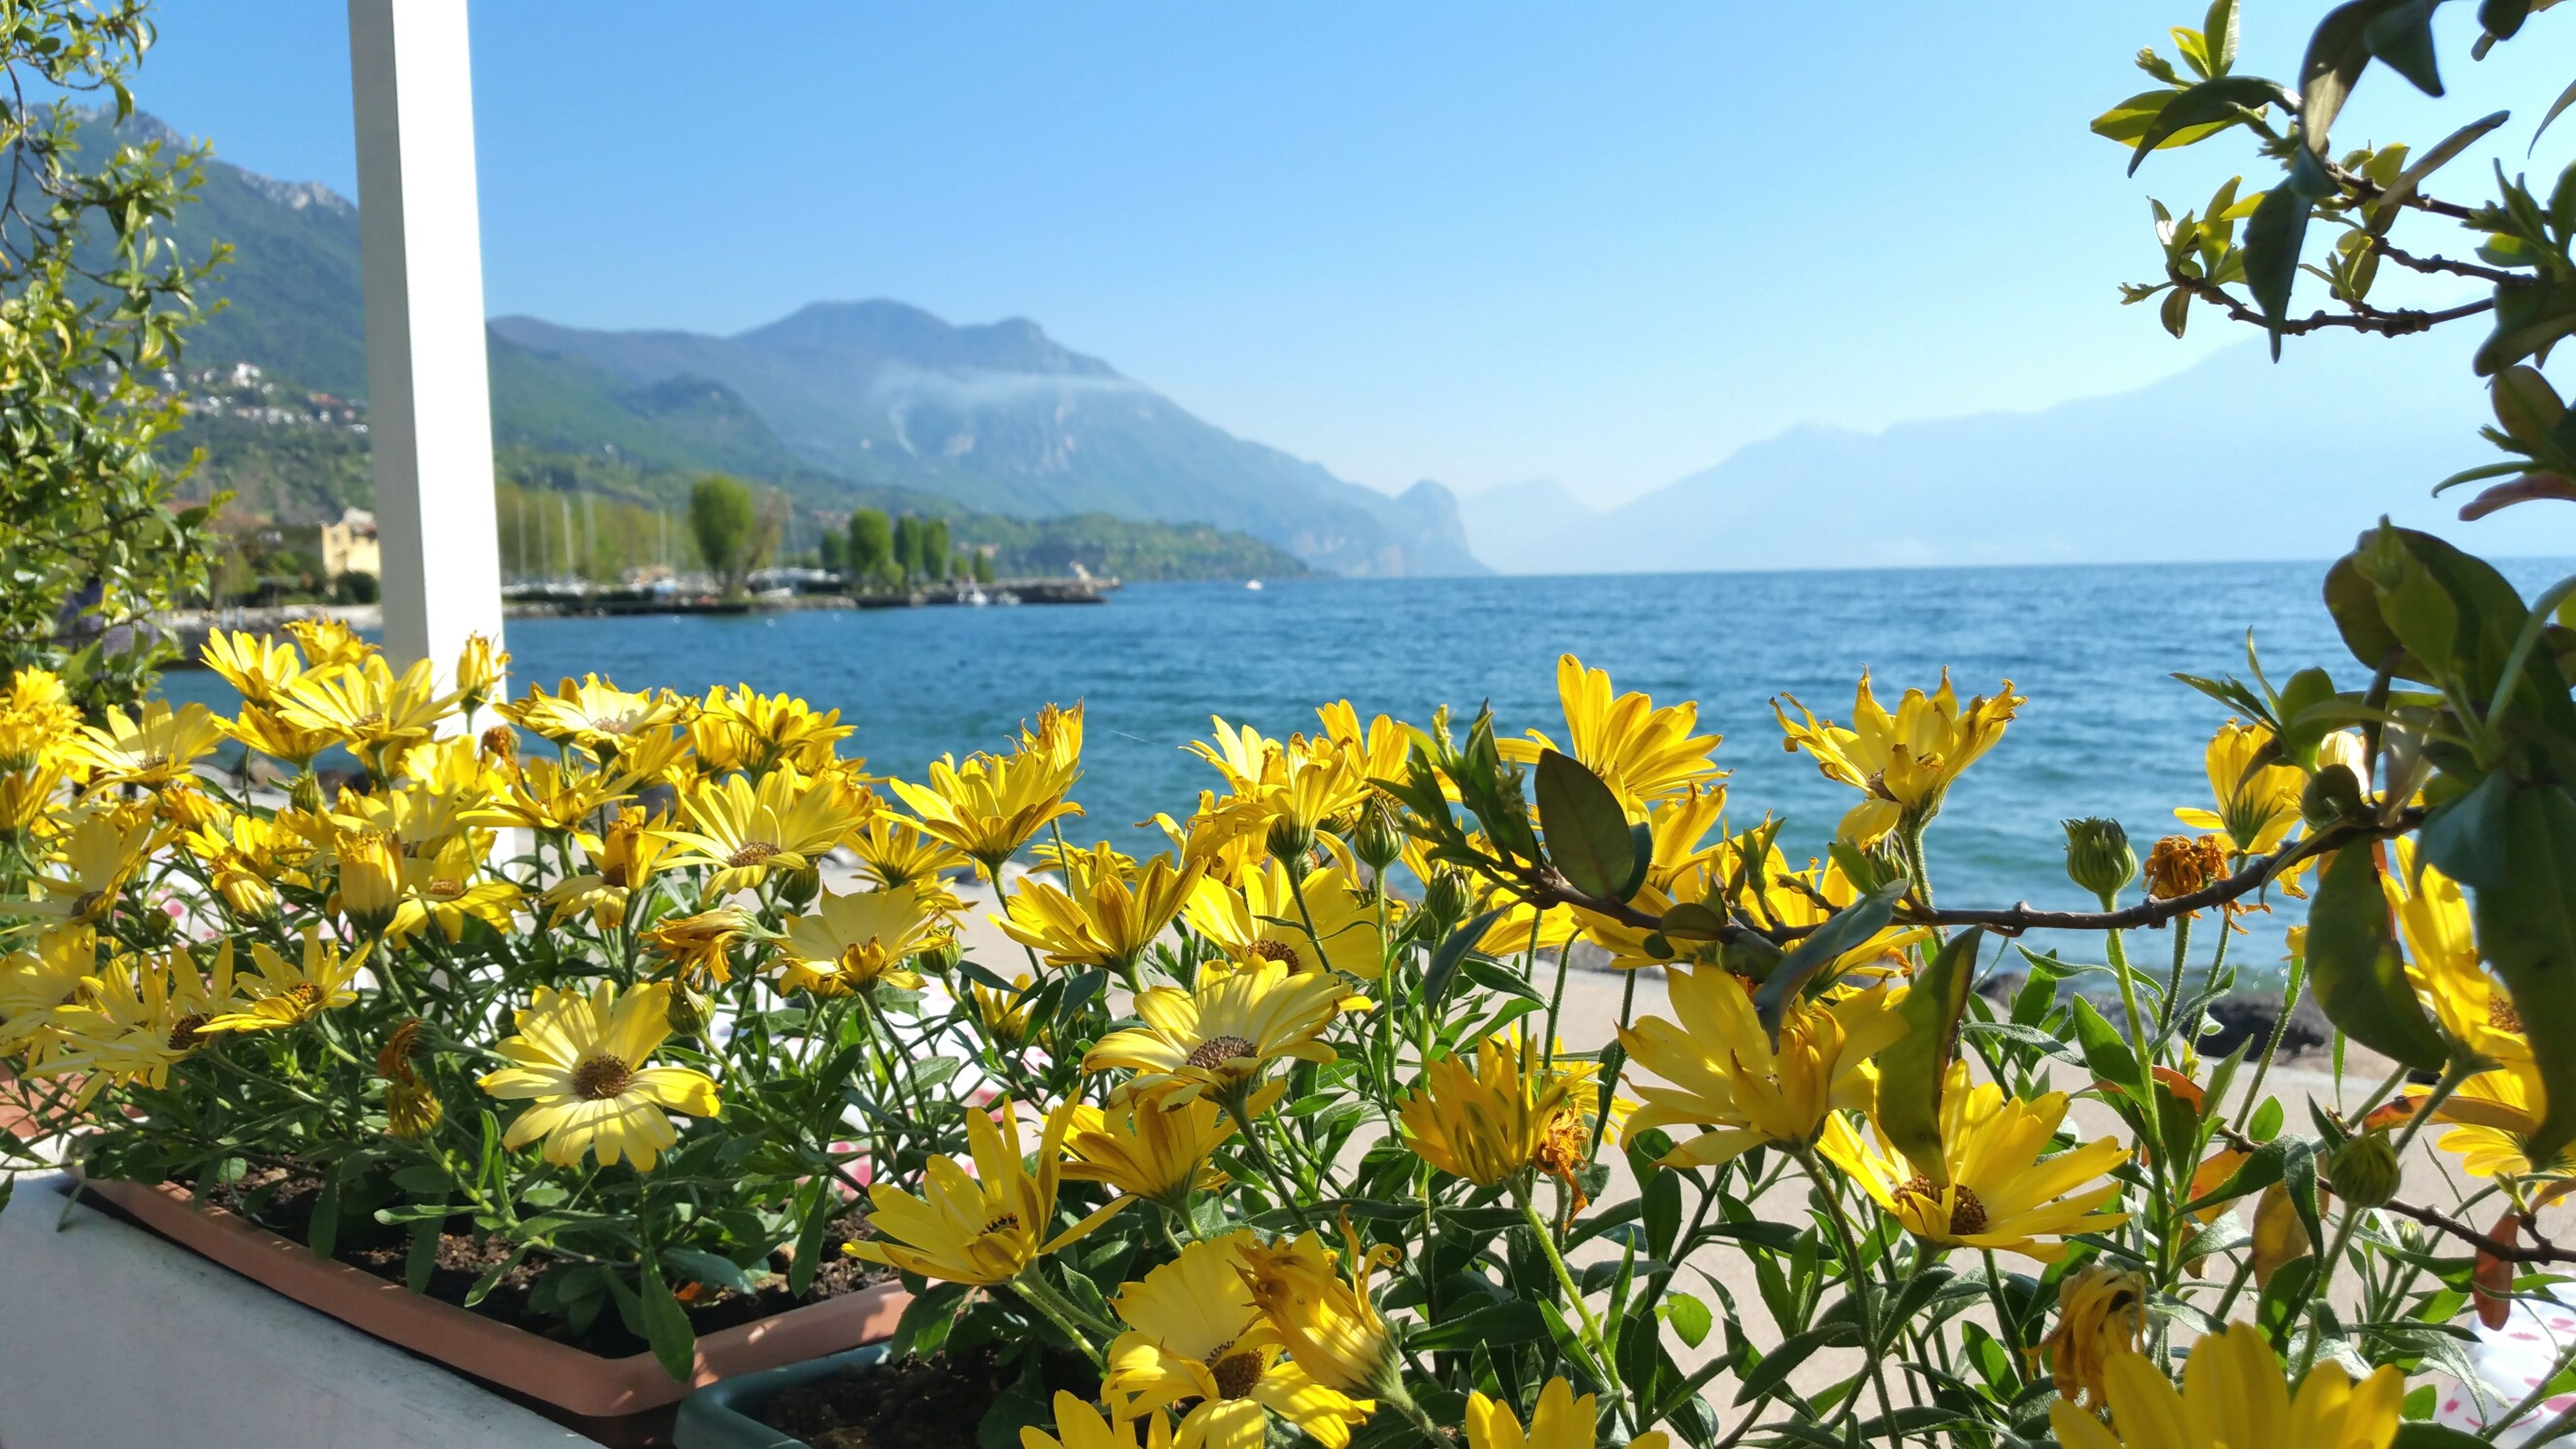 mountain, flower, water, beauty in nature, yellow, nature, blue, sea, scenics, growth, sky, tranquil scene, clear sky, tranquility, mountain range, plant, lake, tree, freshness, day